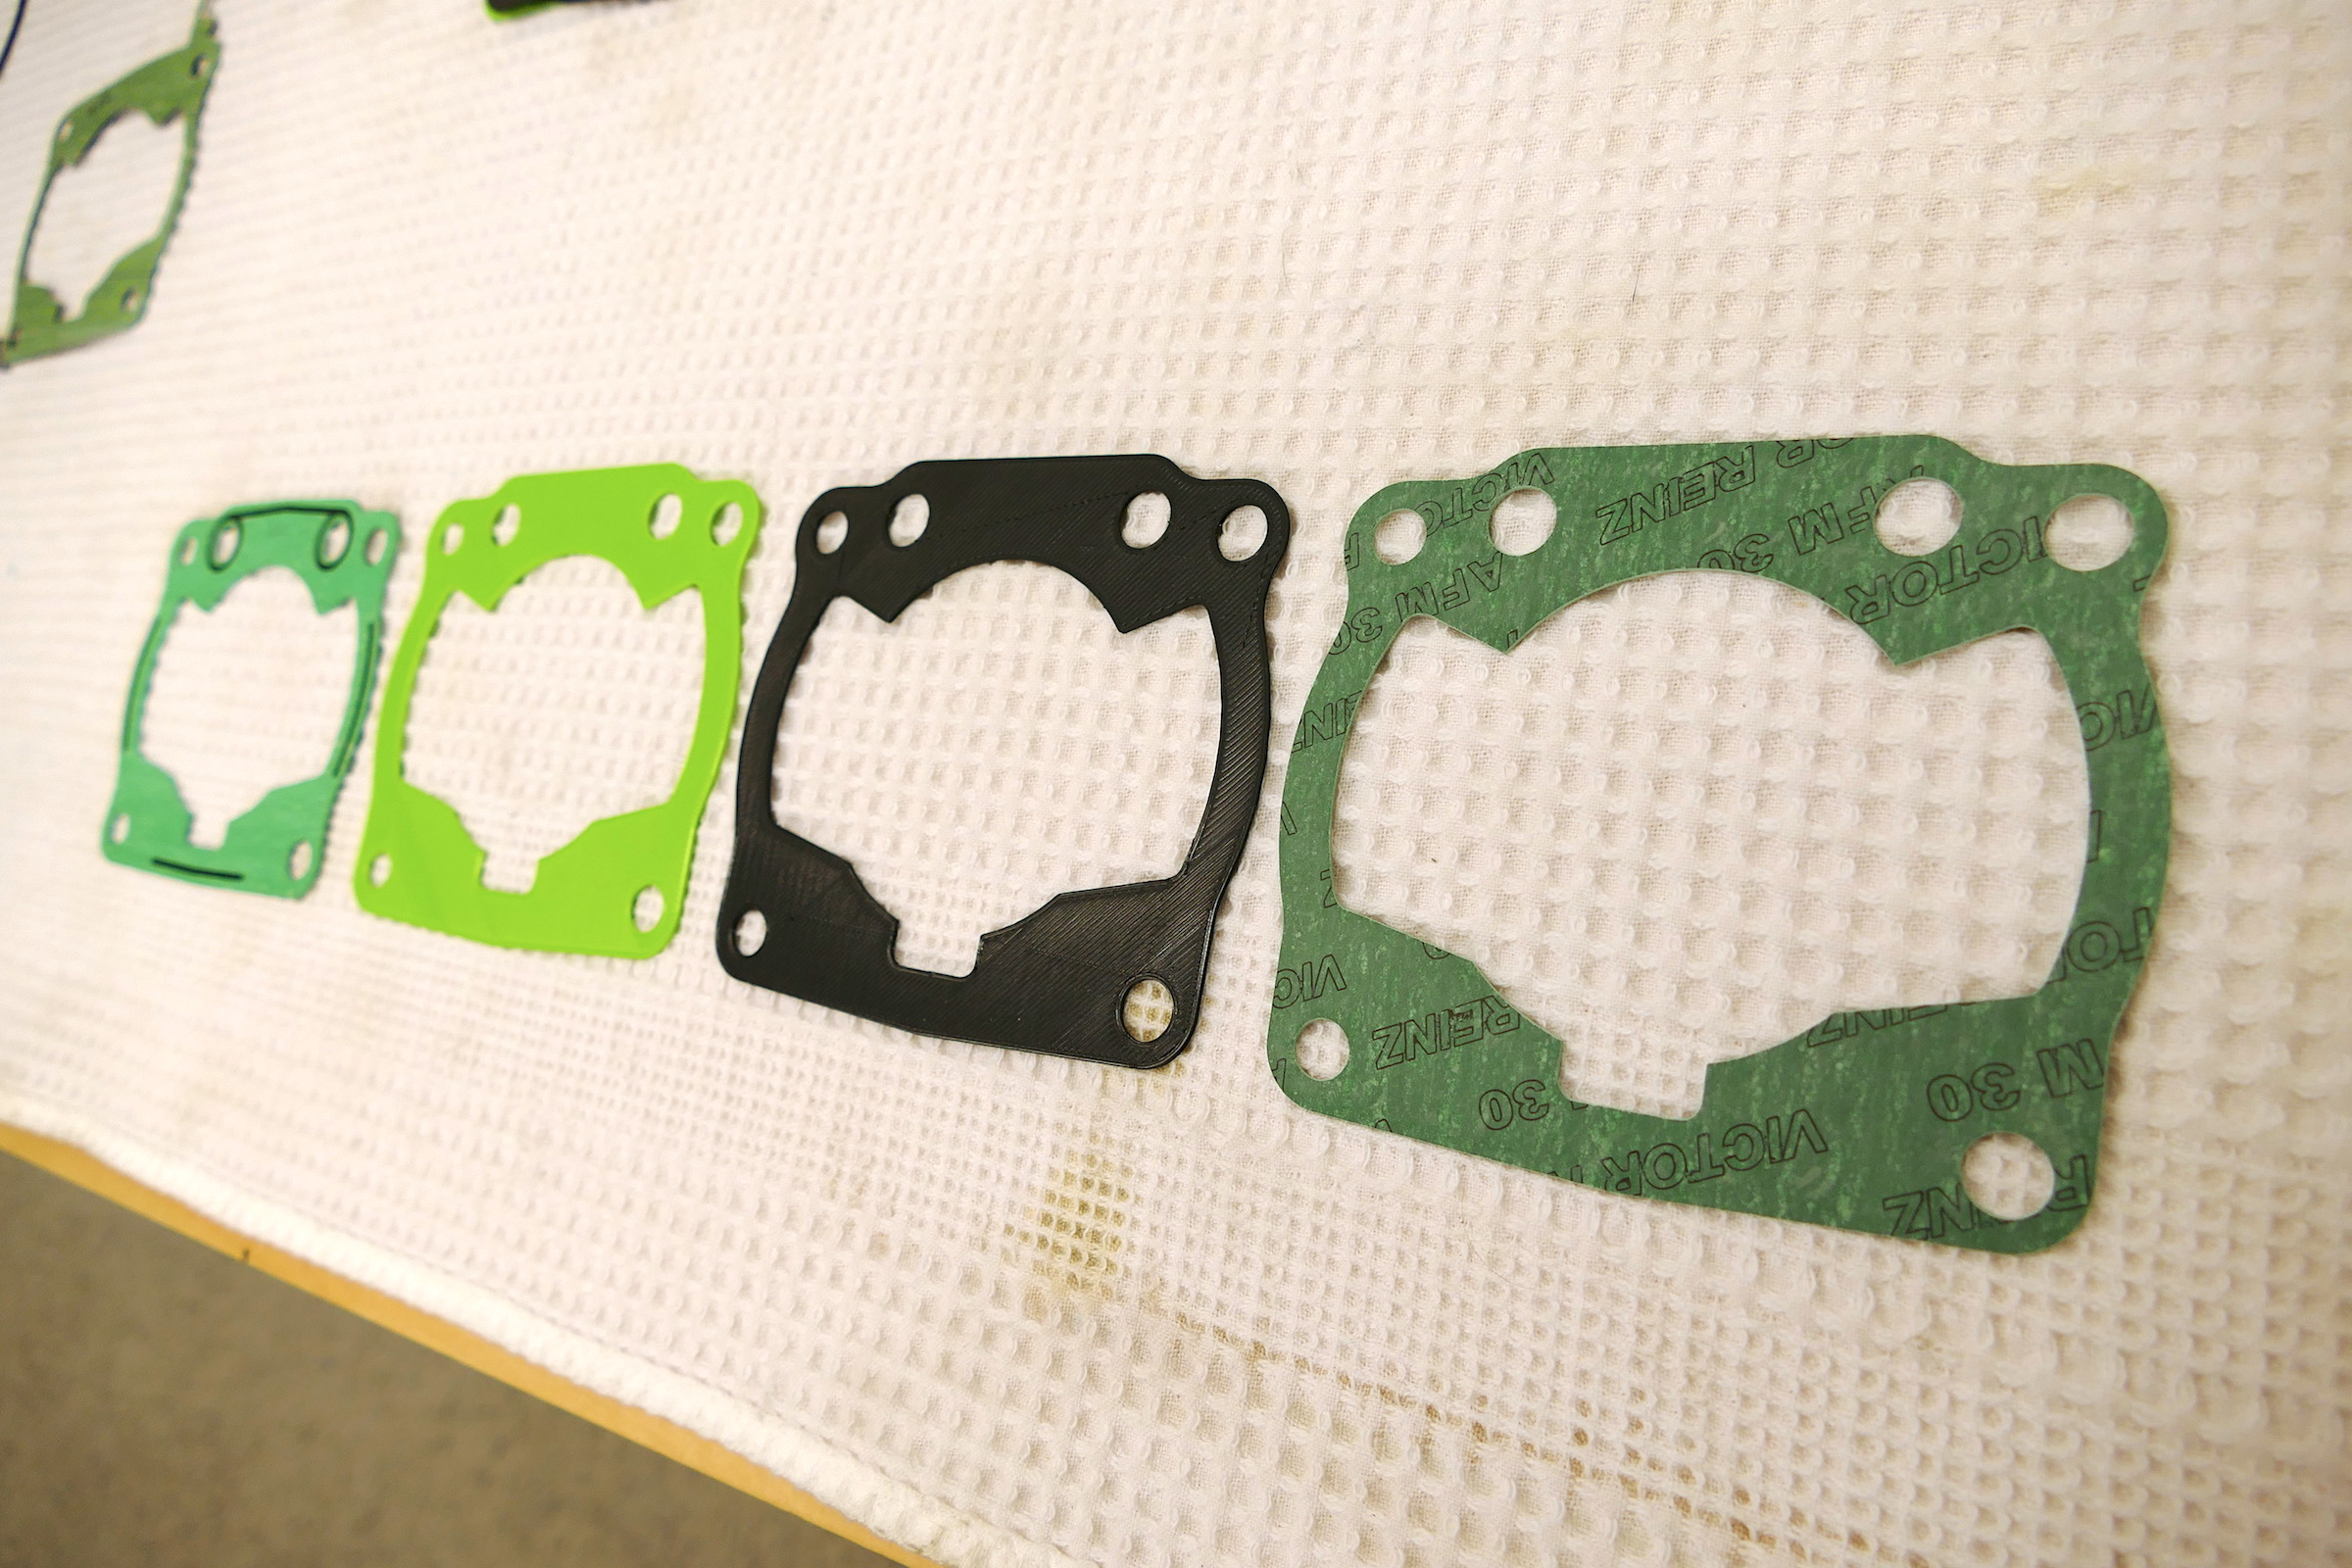 left to right: original Honda gasket, 1st prototype, 2nd prototype, production gasket